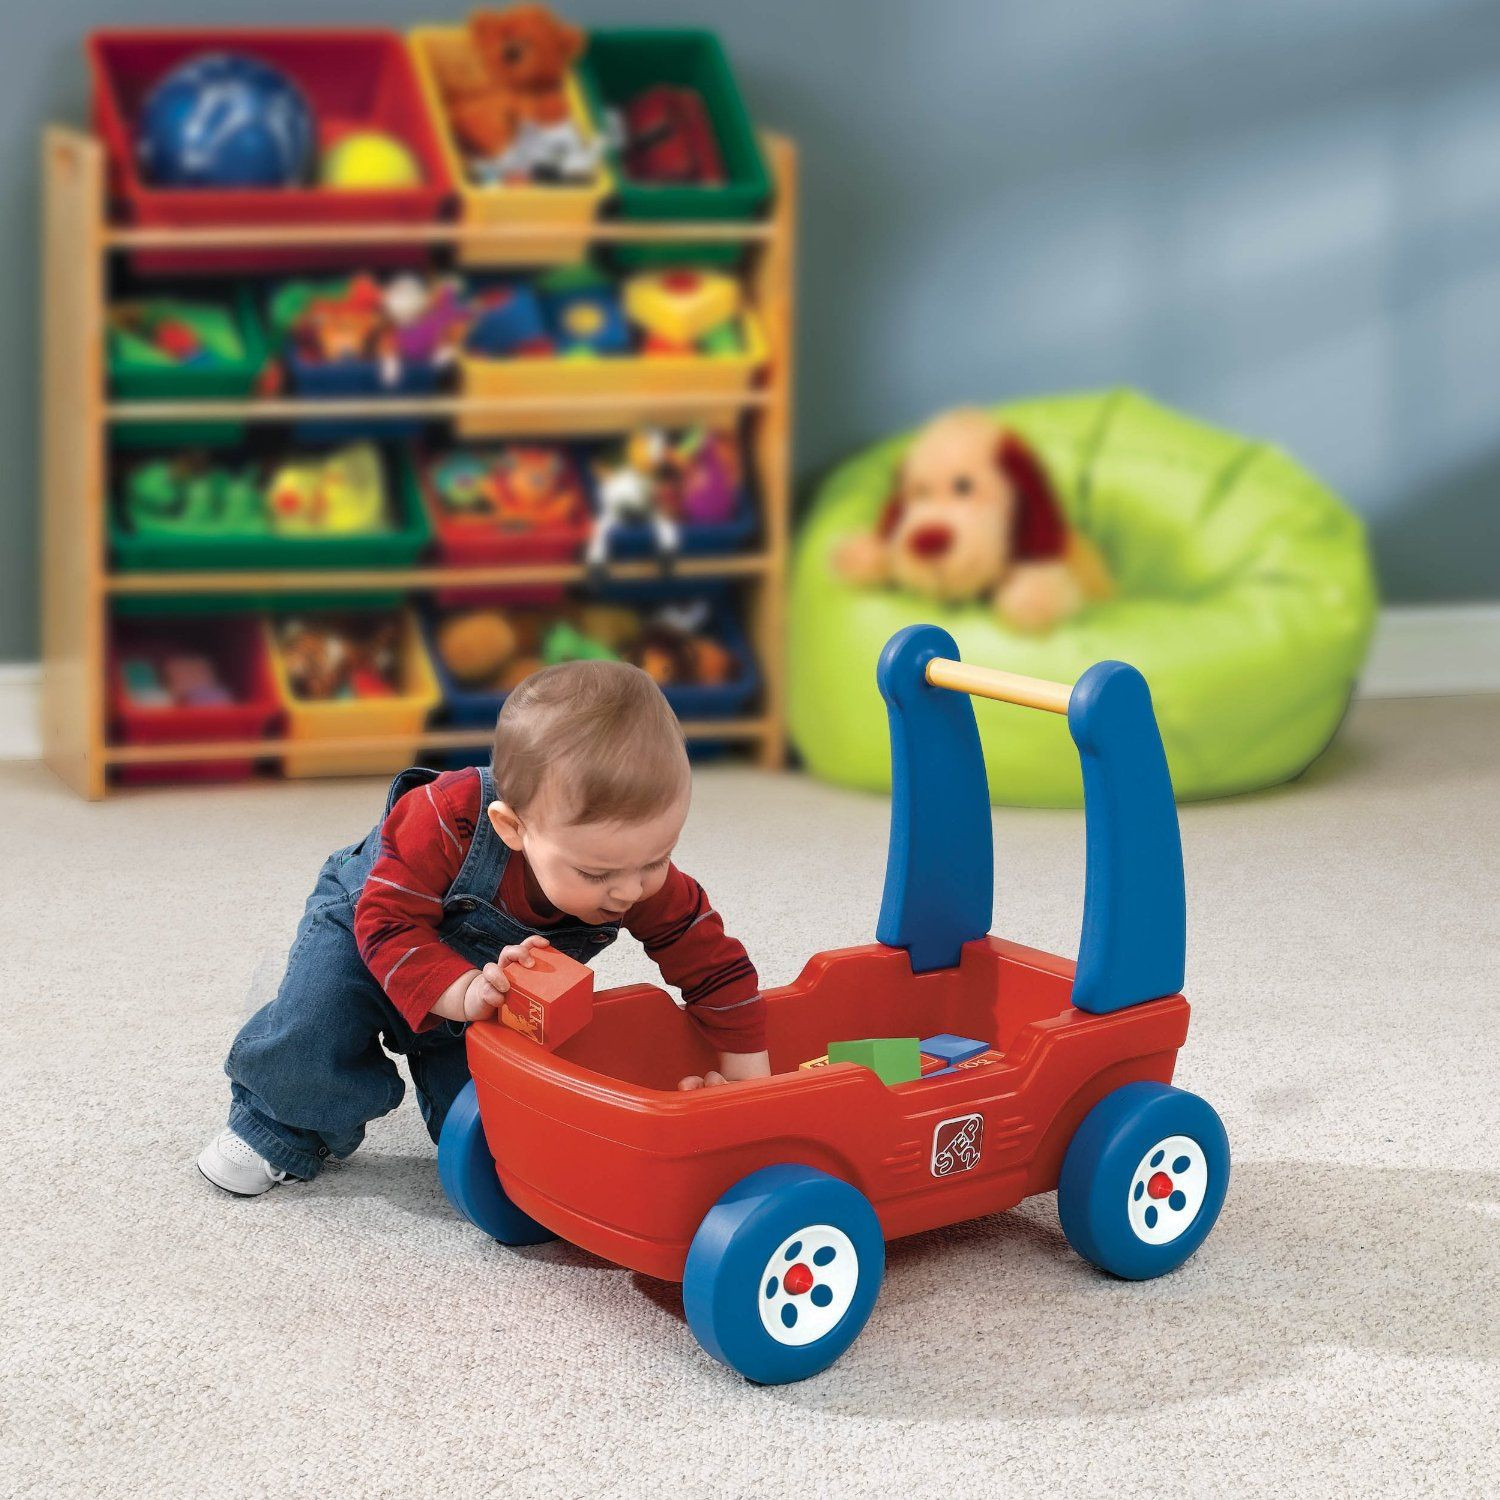 Best ideas about Baby Boy 1St Birthday Gift Ideas . Save or Pin Best rated bud friendly t ideas for one year old Now.